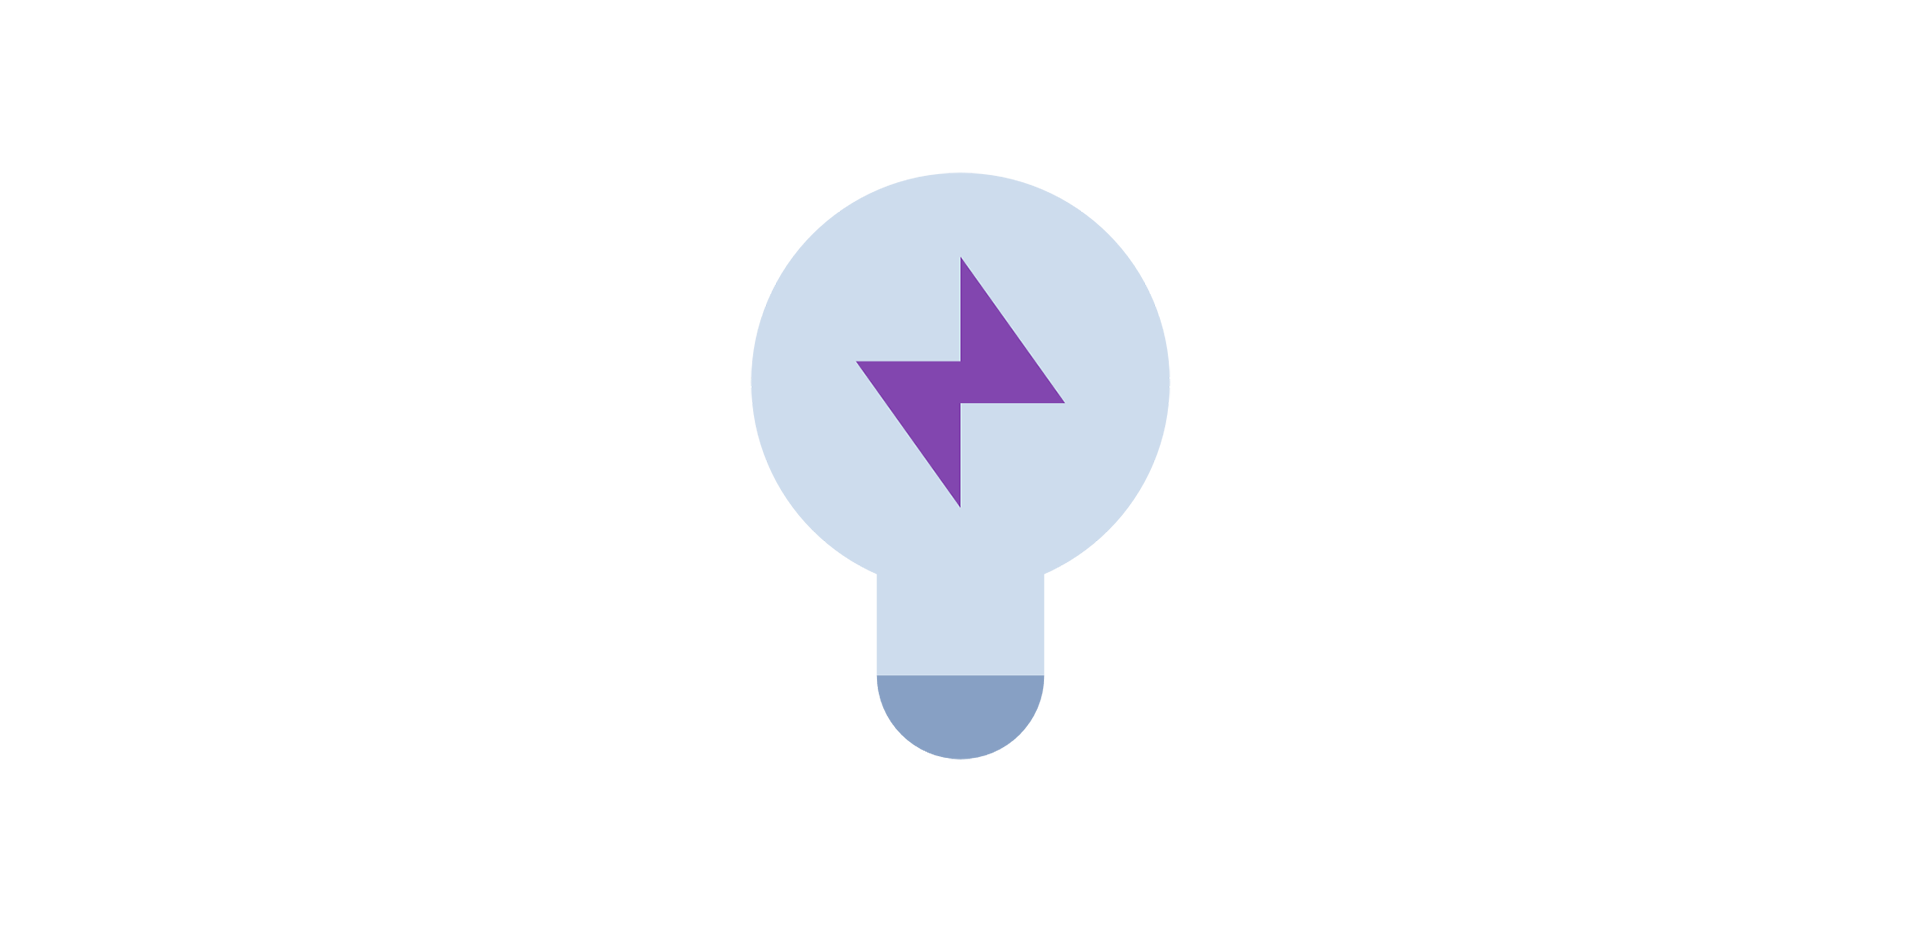 Lightbulb icon with a purple lightning bolt inside it